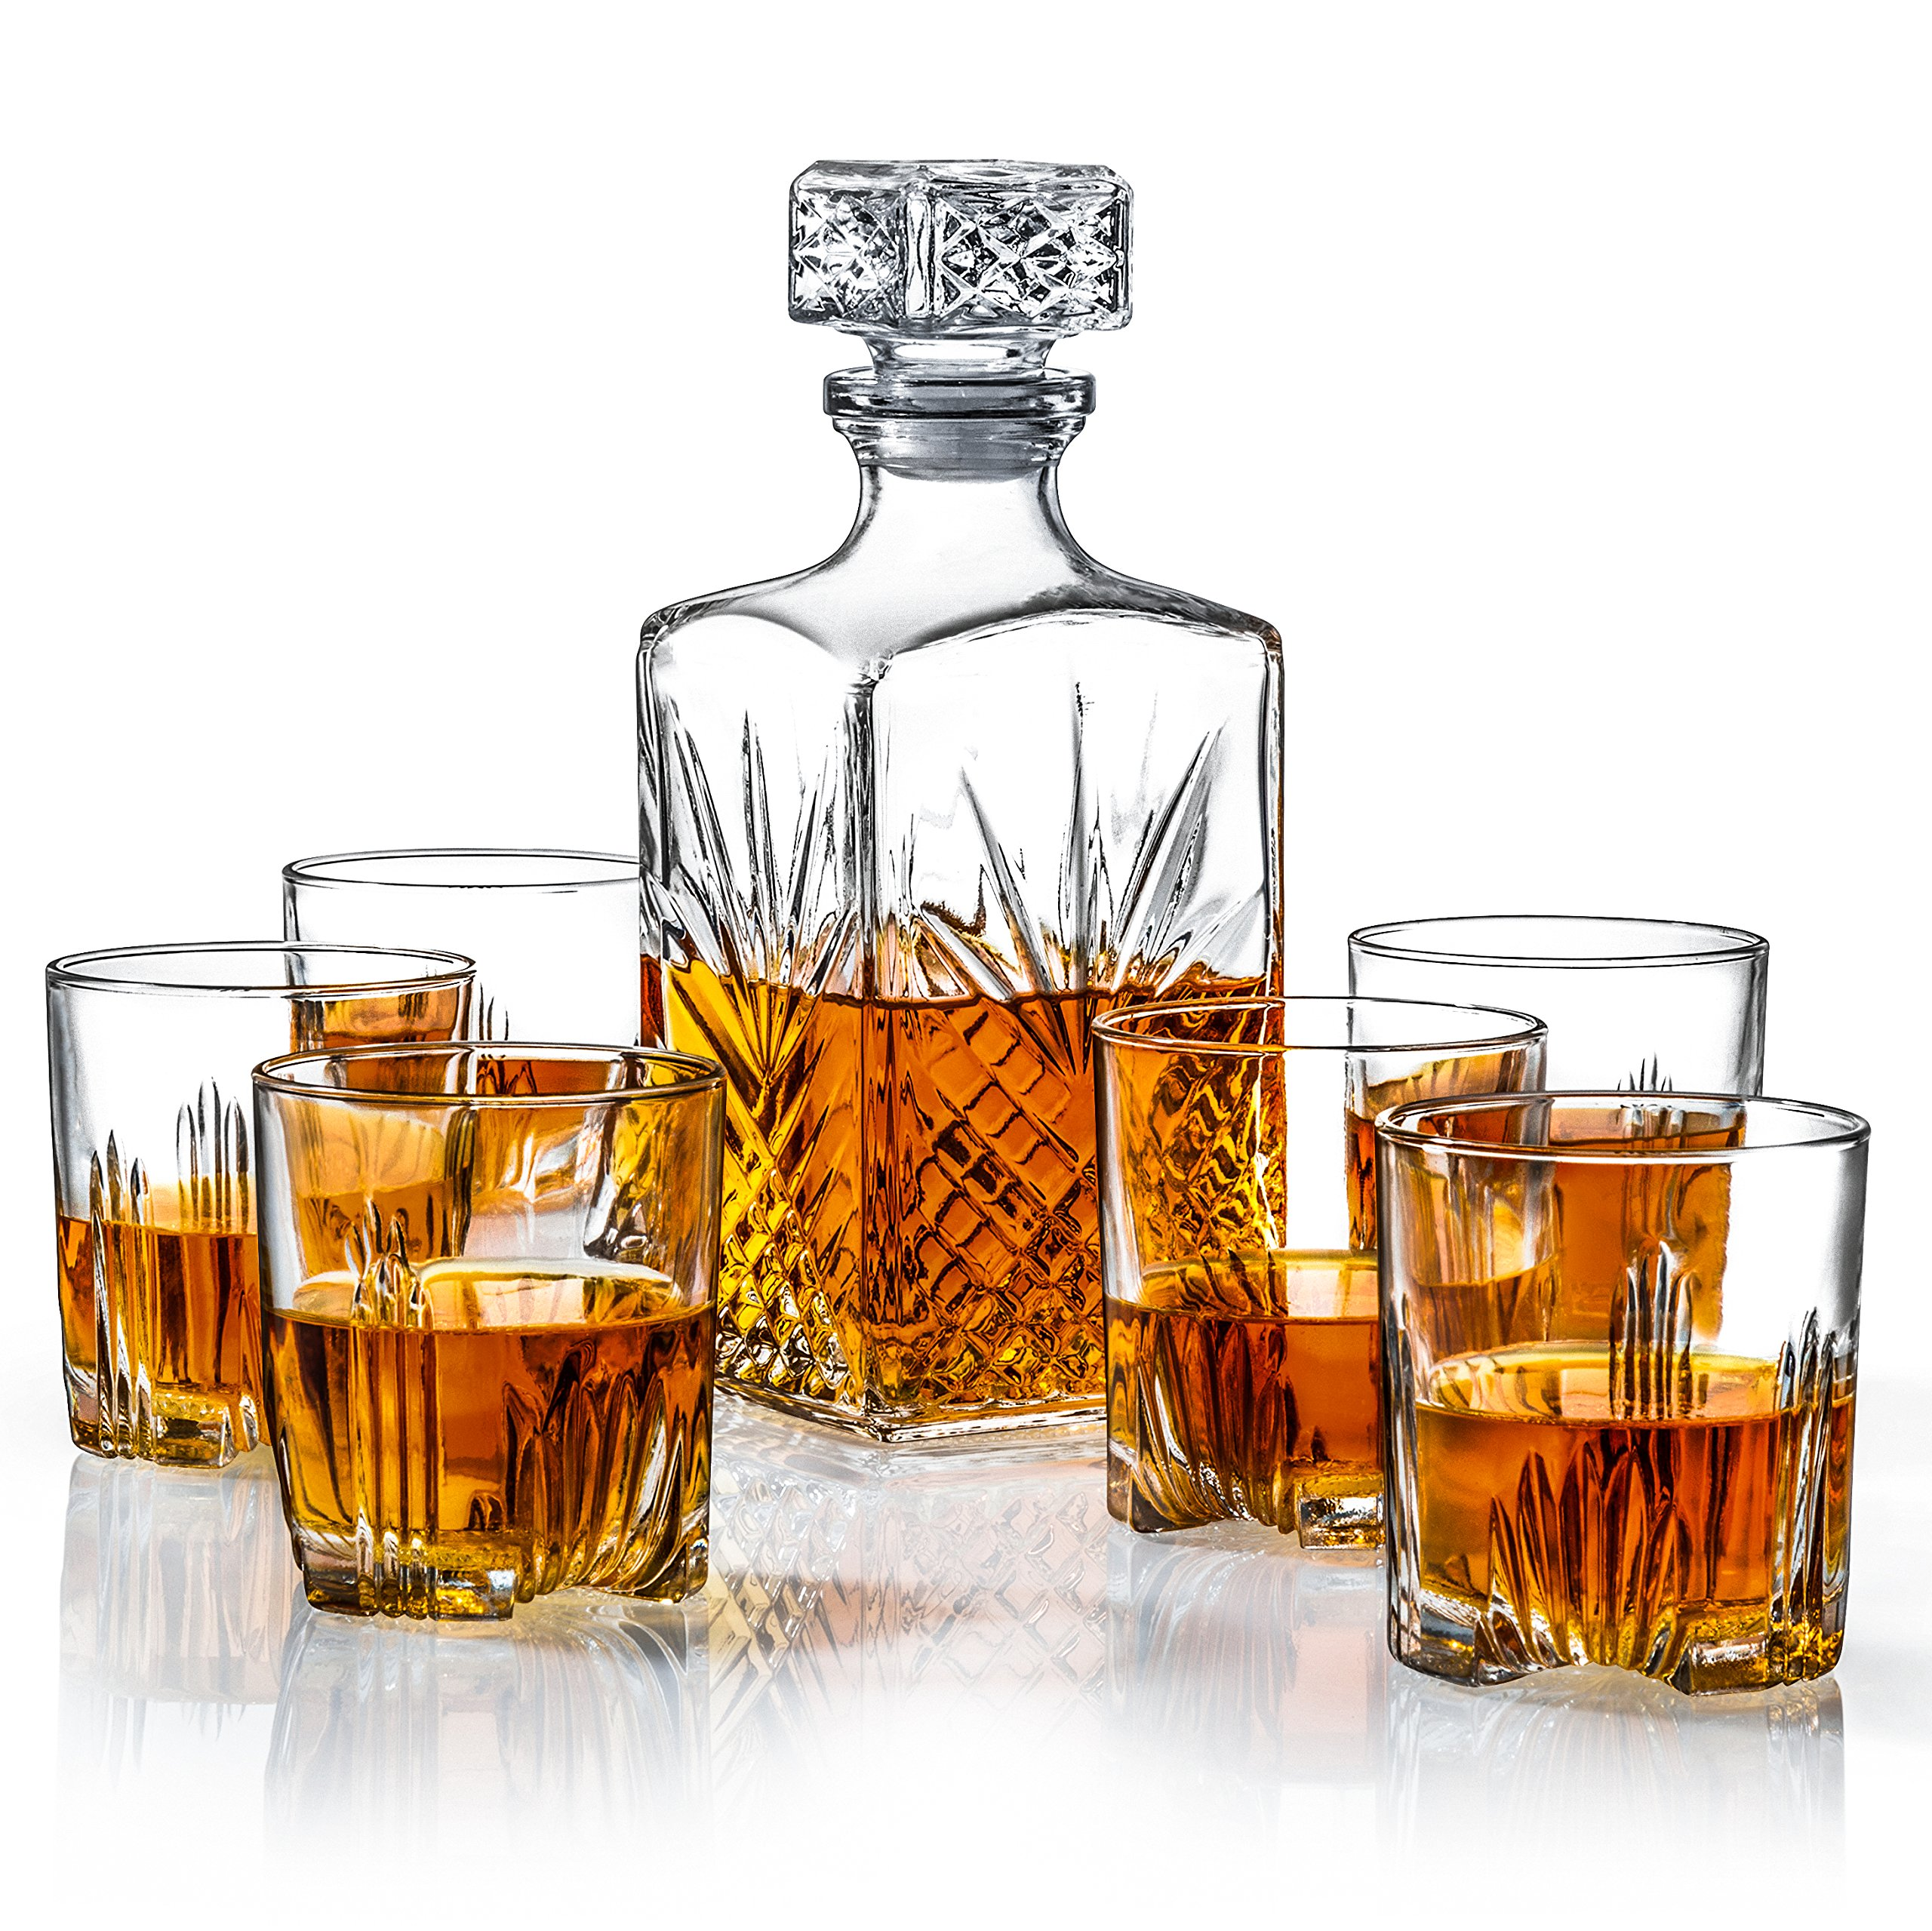 James Scott 7-Piece European Made Glass Decanter & Whisky Glasses Set, Sophisticated Whiskey Decanter with Beautiful Stopper and 6 Lovely Cocktail Glasses, comes in an Exquisite Gift Box